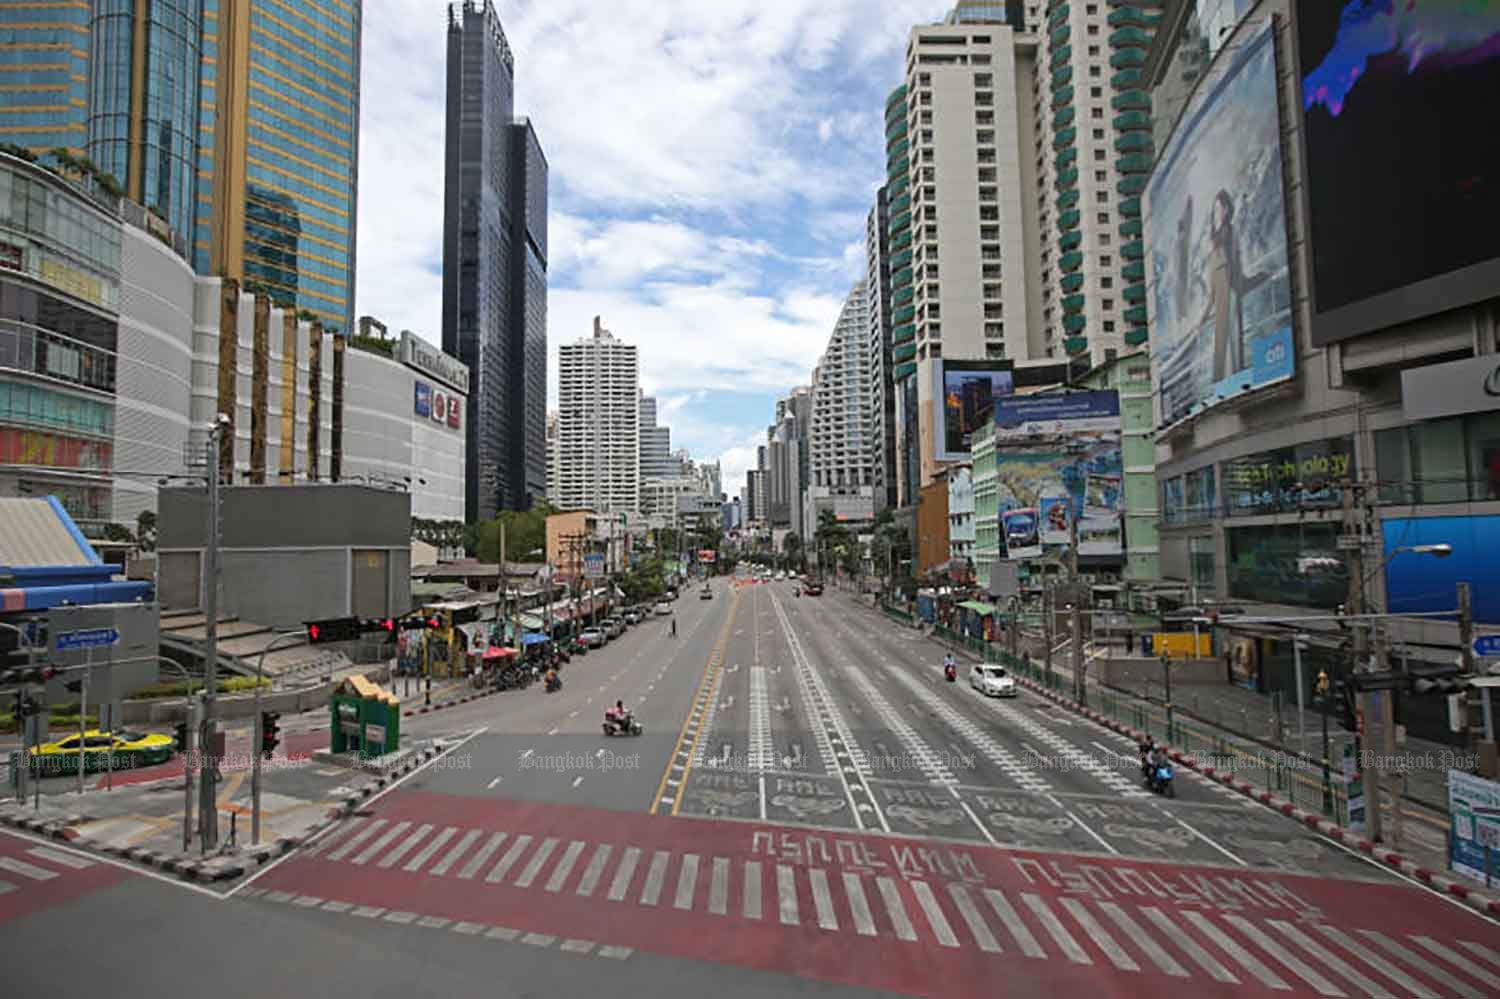 Normally bustling Asoke intersection is seen with very light traffic after the full lockdown took effect on Tuesday in 13 provinces hardest-hit by the pandemic, including Bangkok. Stepped-up curbs are intended to lower surging daily infections which have exceeded 10,000 in the past several days.  (Photo: Varuth Hirunyatheb)